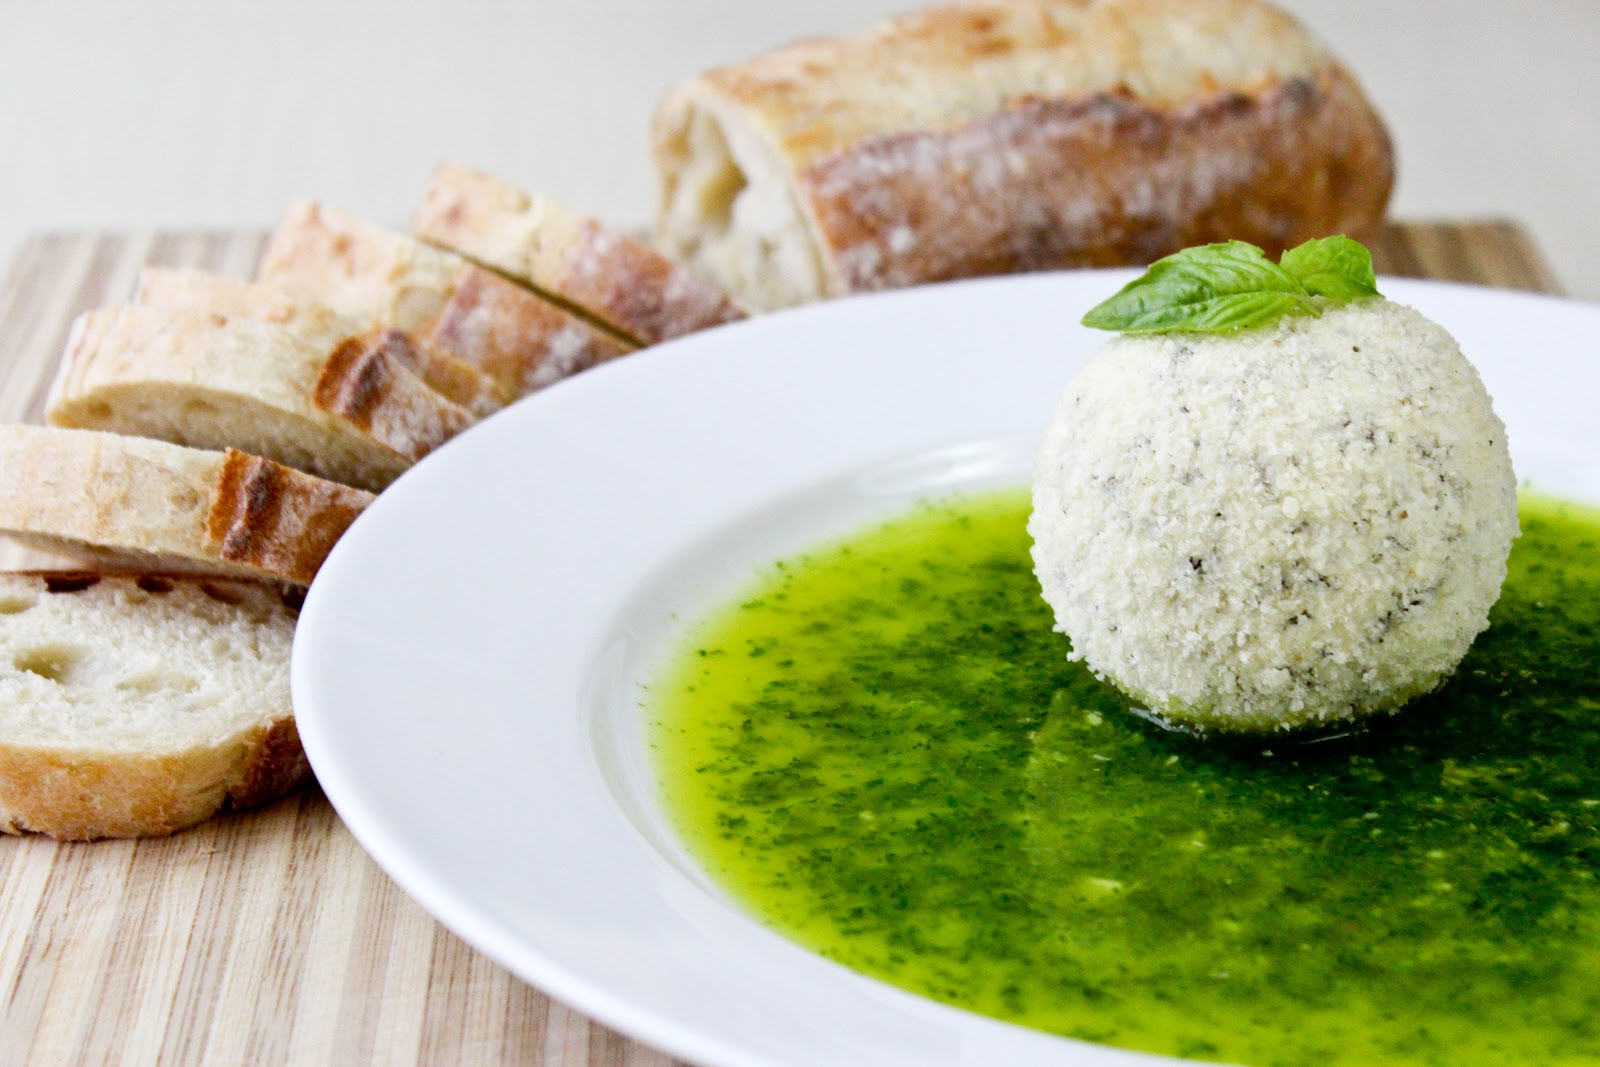 From Dahlias to Doxies: Parmesan Coated Goat Cheese with Basil Oil